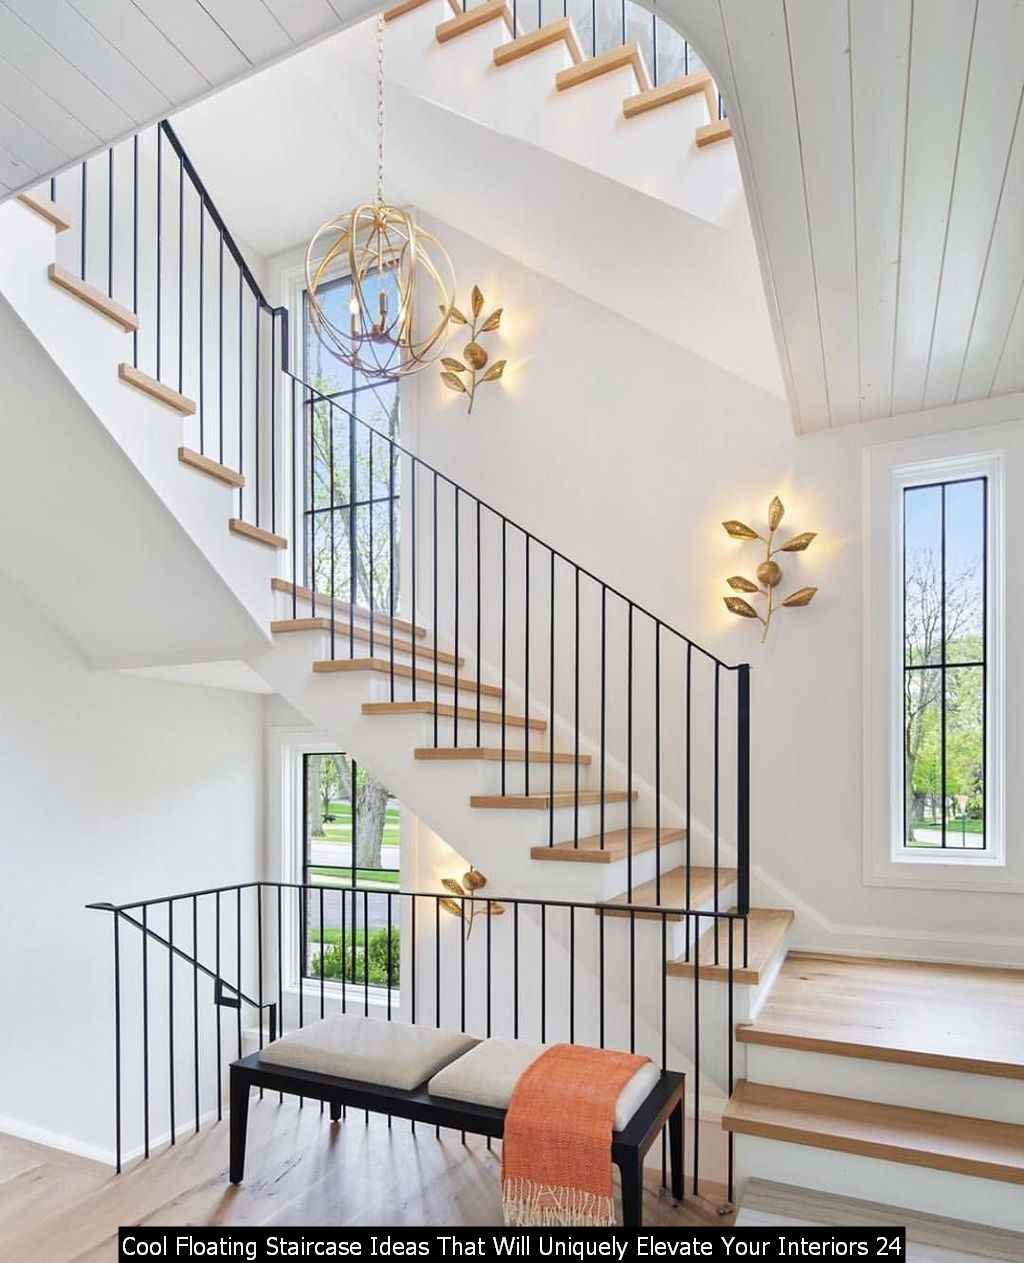 Cool Floating Staircase Ideas That Will Uniquely Elevate Your Interiors 24